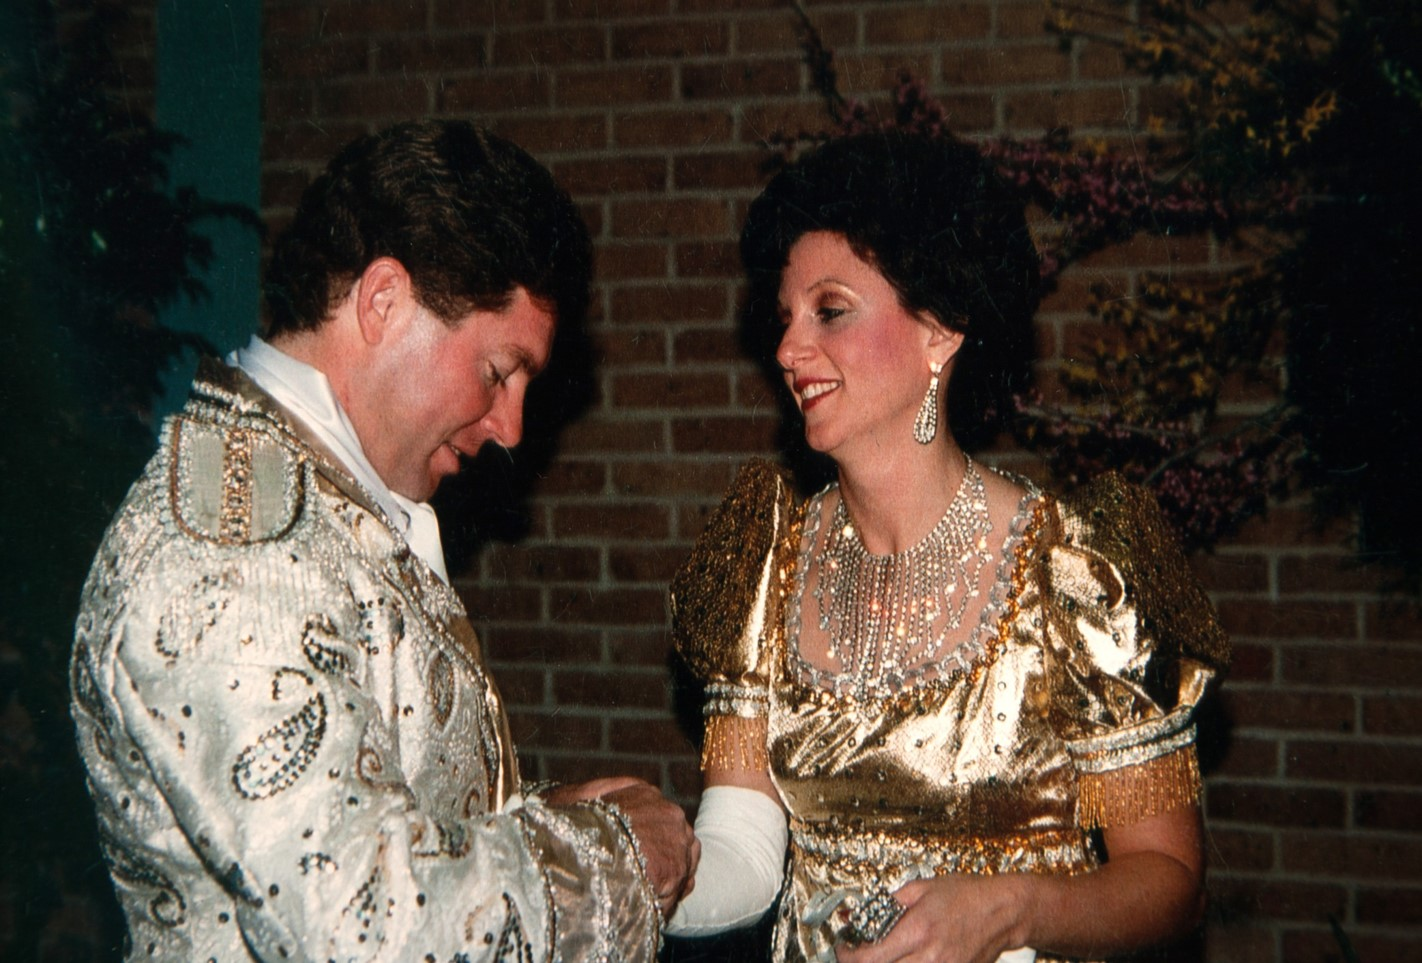 Bonaparte 1987 - Coronation Ball